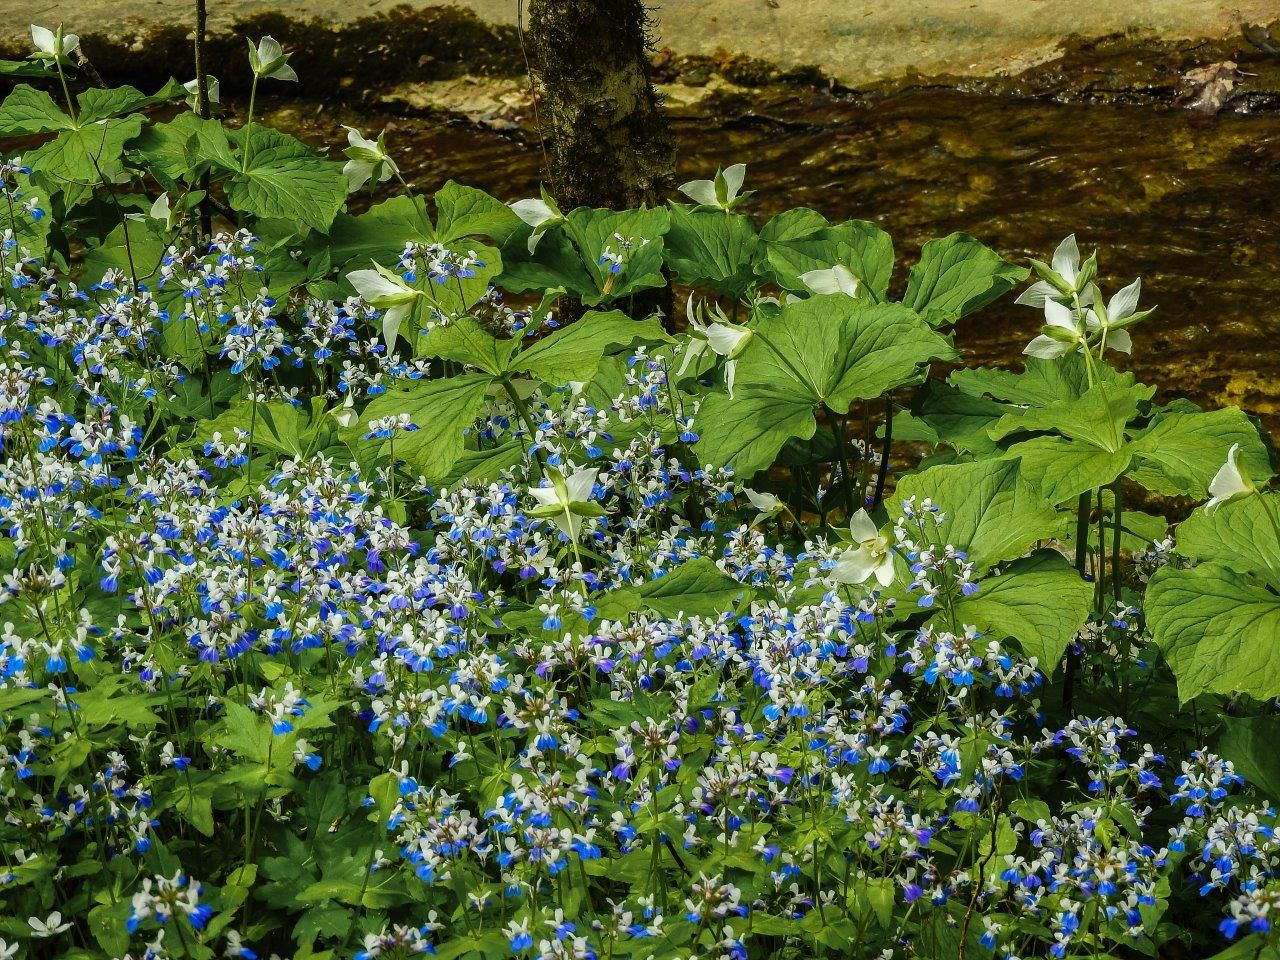 Small blue and white flowers blanket a forest floor.